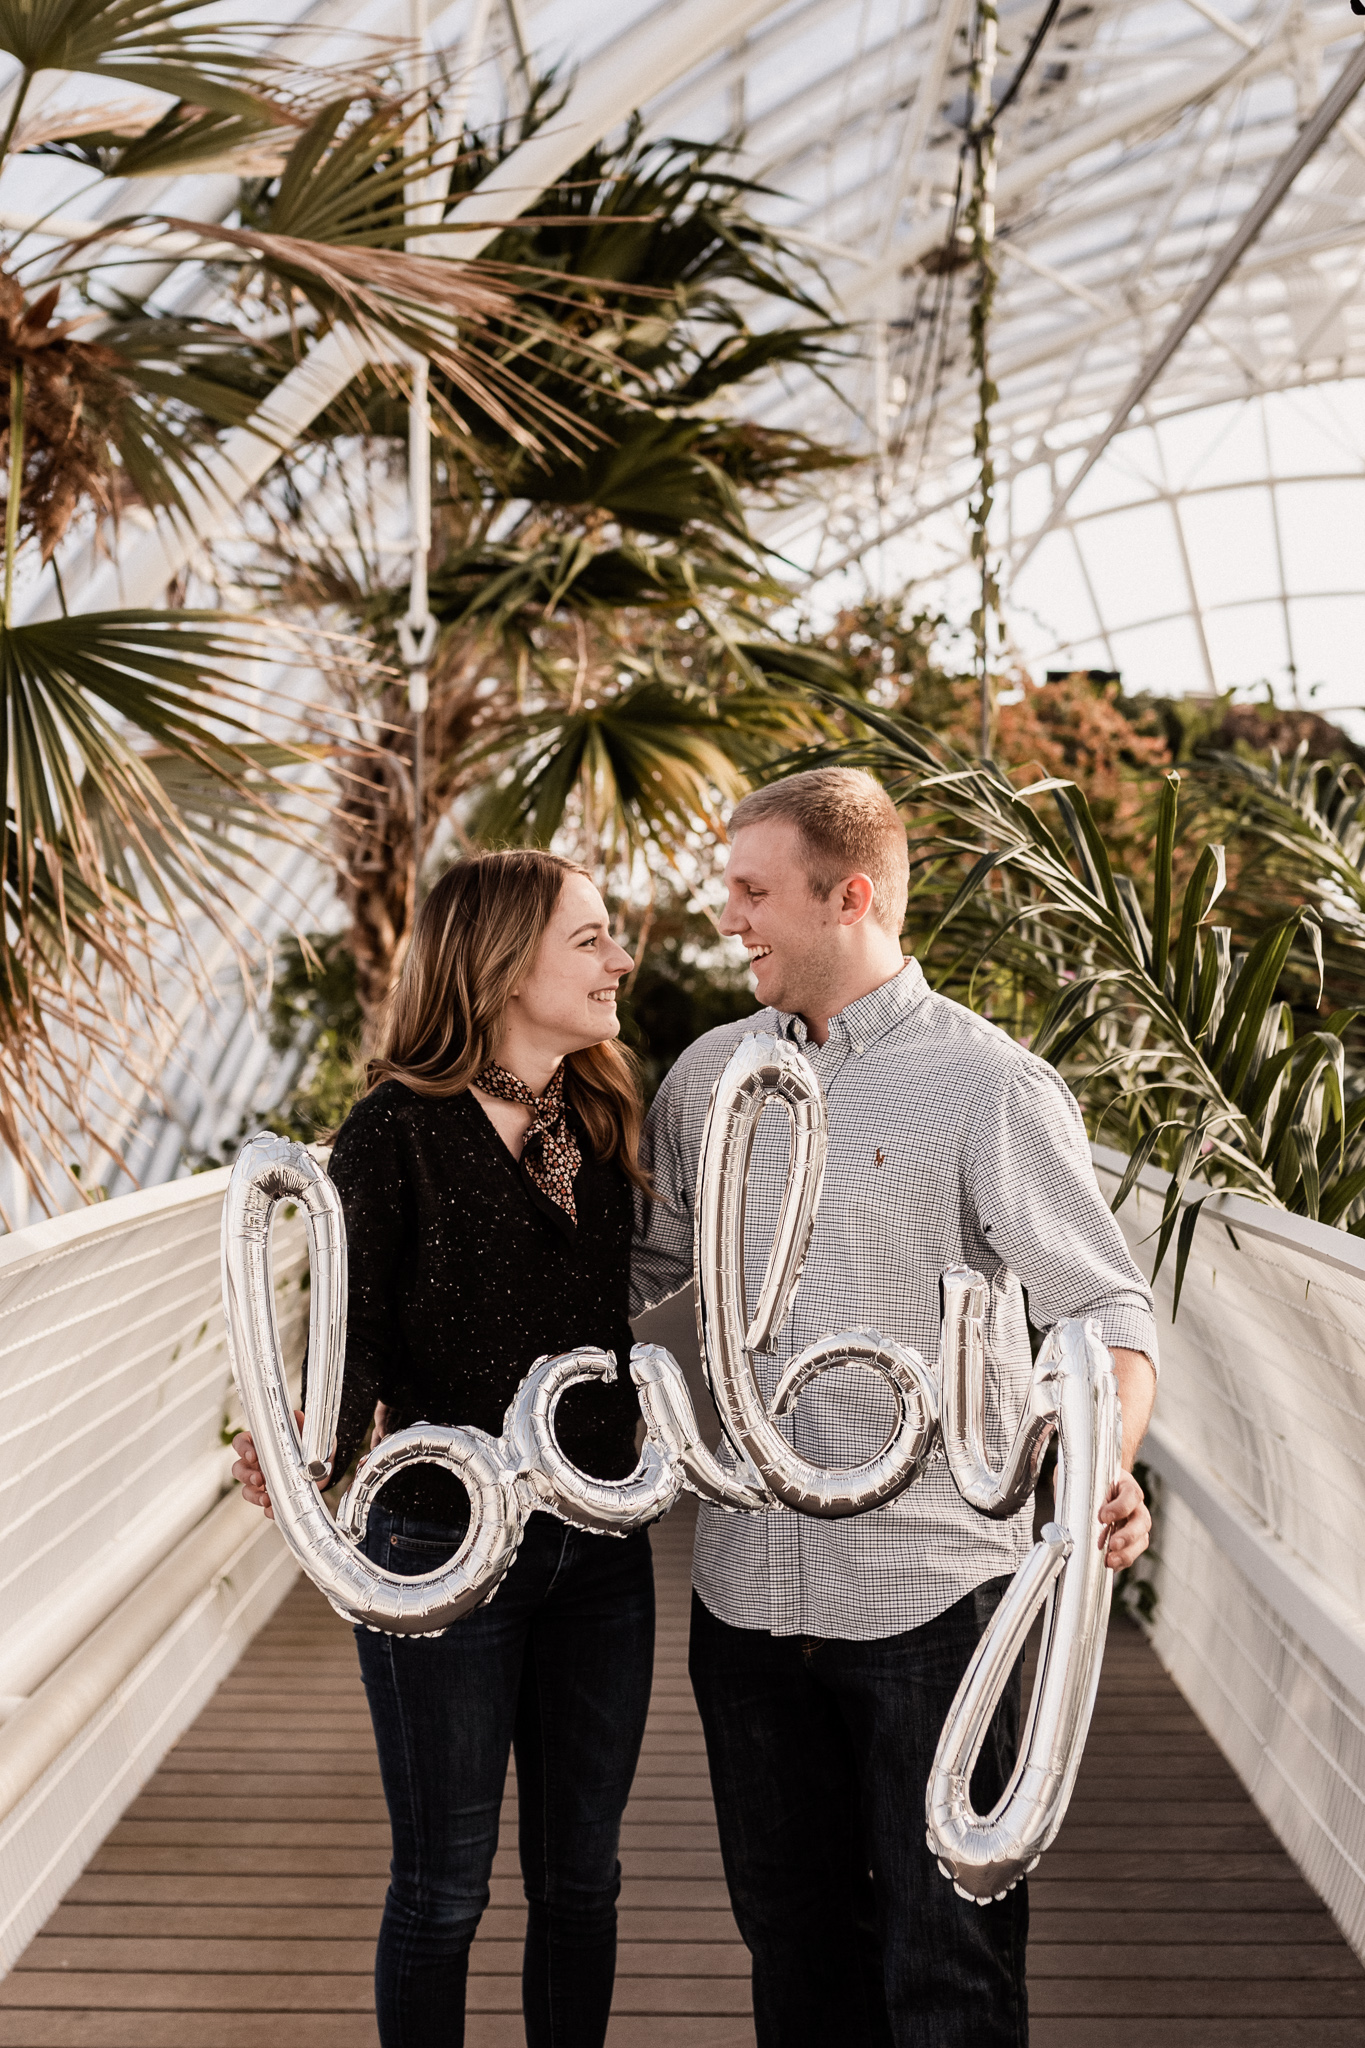 Reagan + Jordan | Tropical Baby Annoucement | Oklahoma Lifestyle Photographer-14.jpg